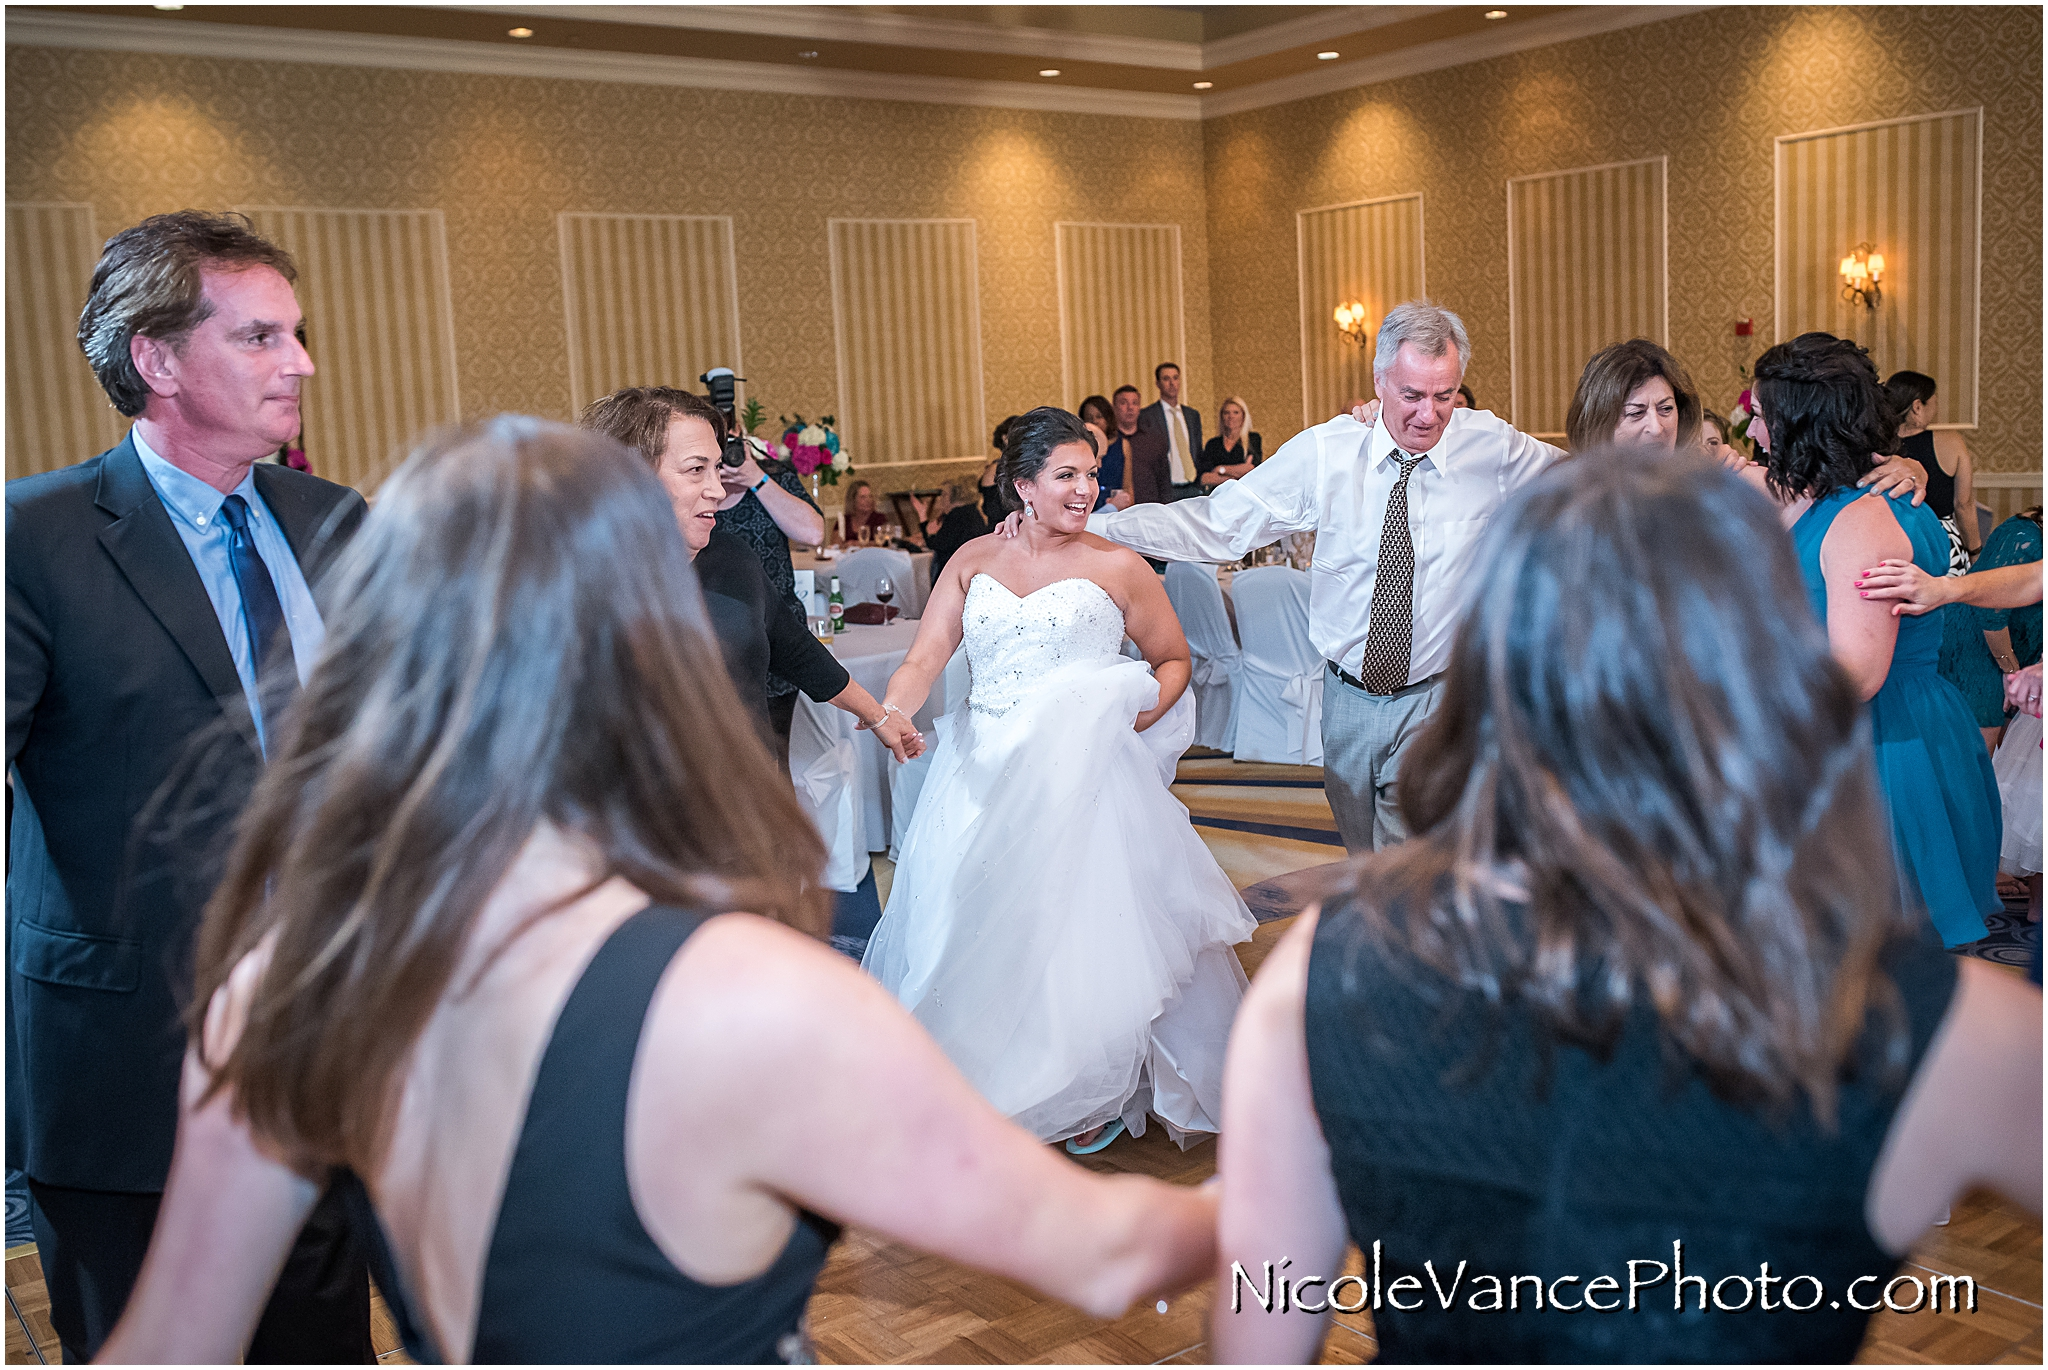 Dancing the Horah at the reception at Virginia Crossings.